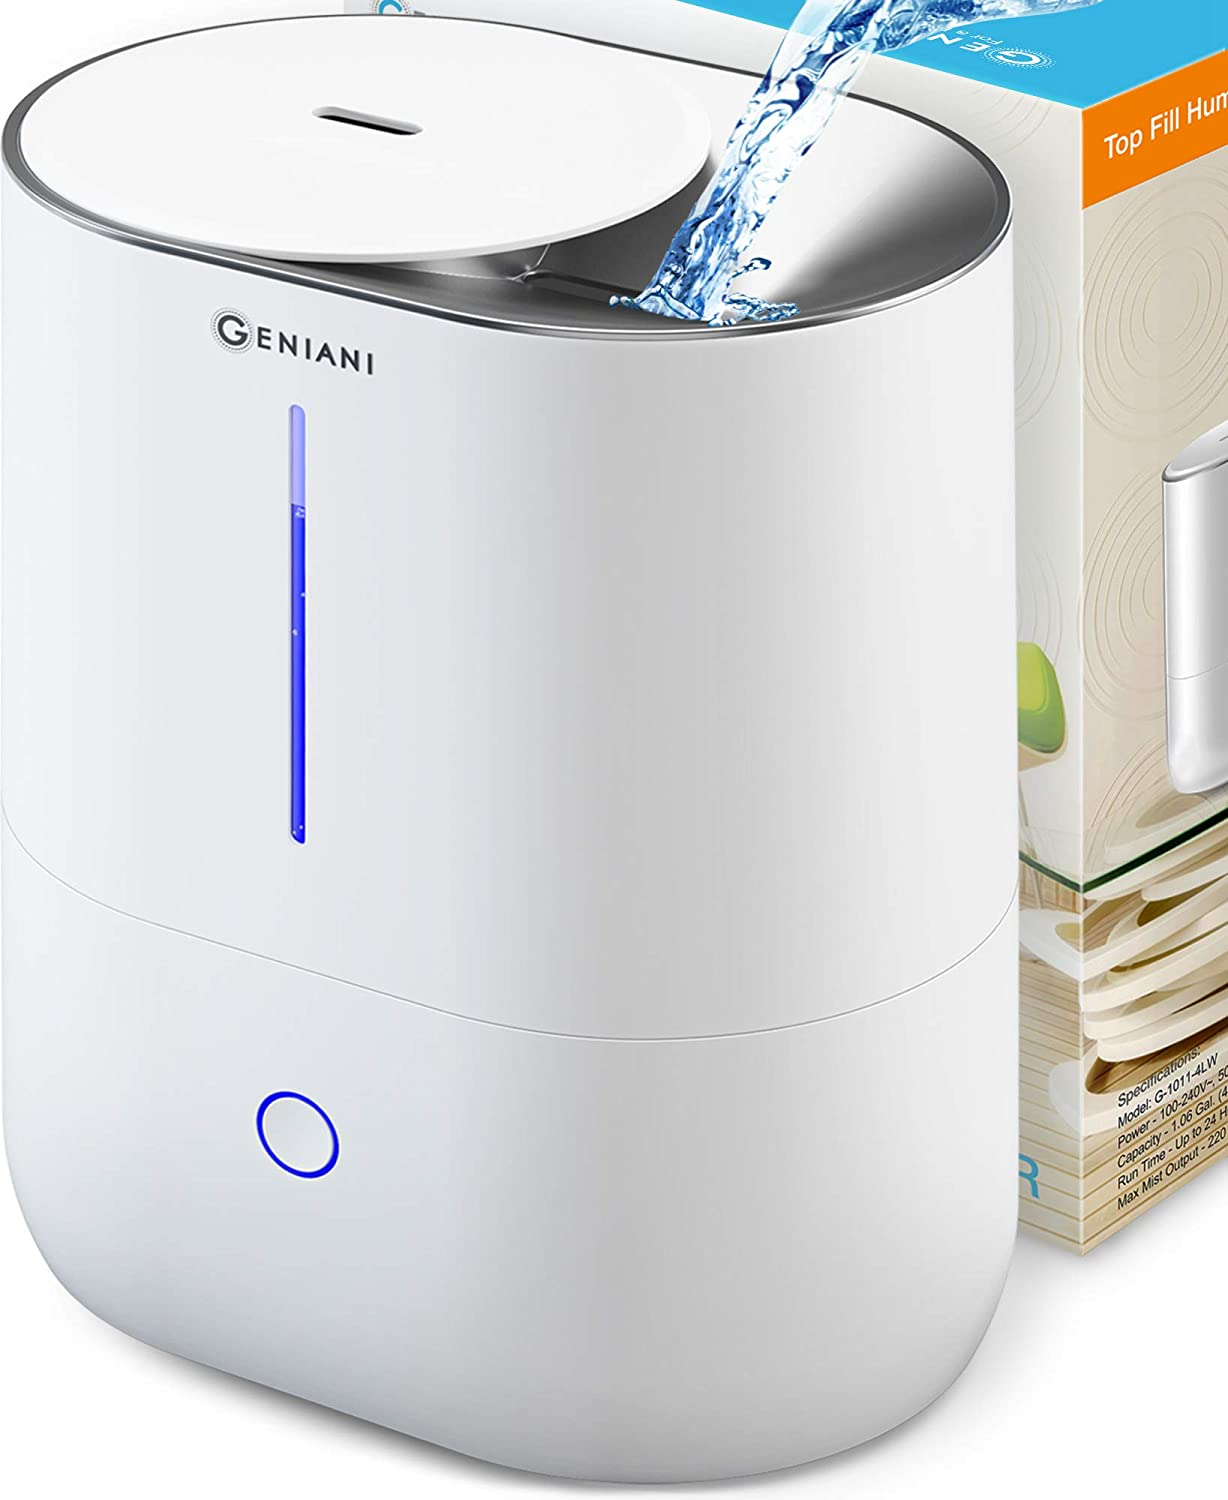 Top Fill Cool Mist Humidifiers for Bedroom & Essential Oil Diffuser - Smart Aroma Ultrasonic Humidifier for Home, Baby, Large Room with Auto Shut Off, 4L Easy to Clean Water Tank - 2 Year Warranty